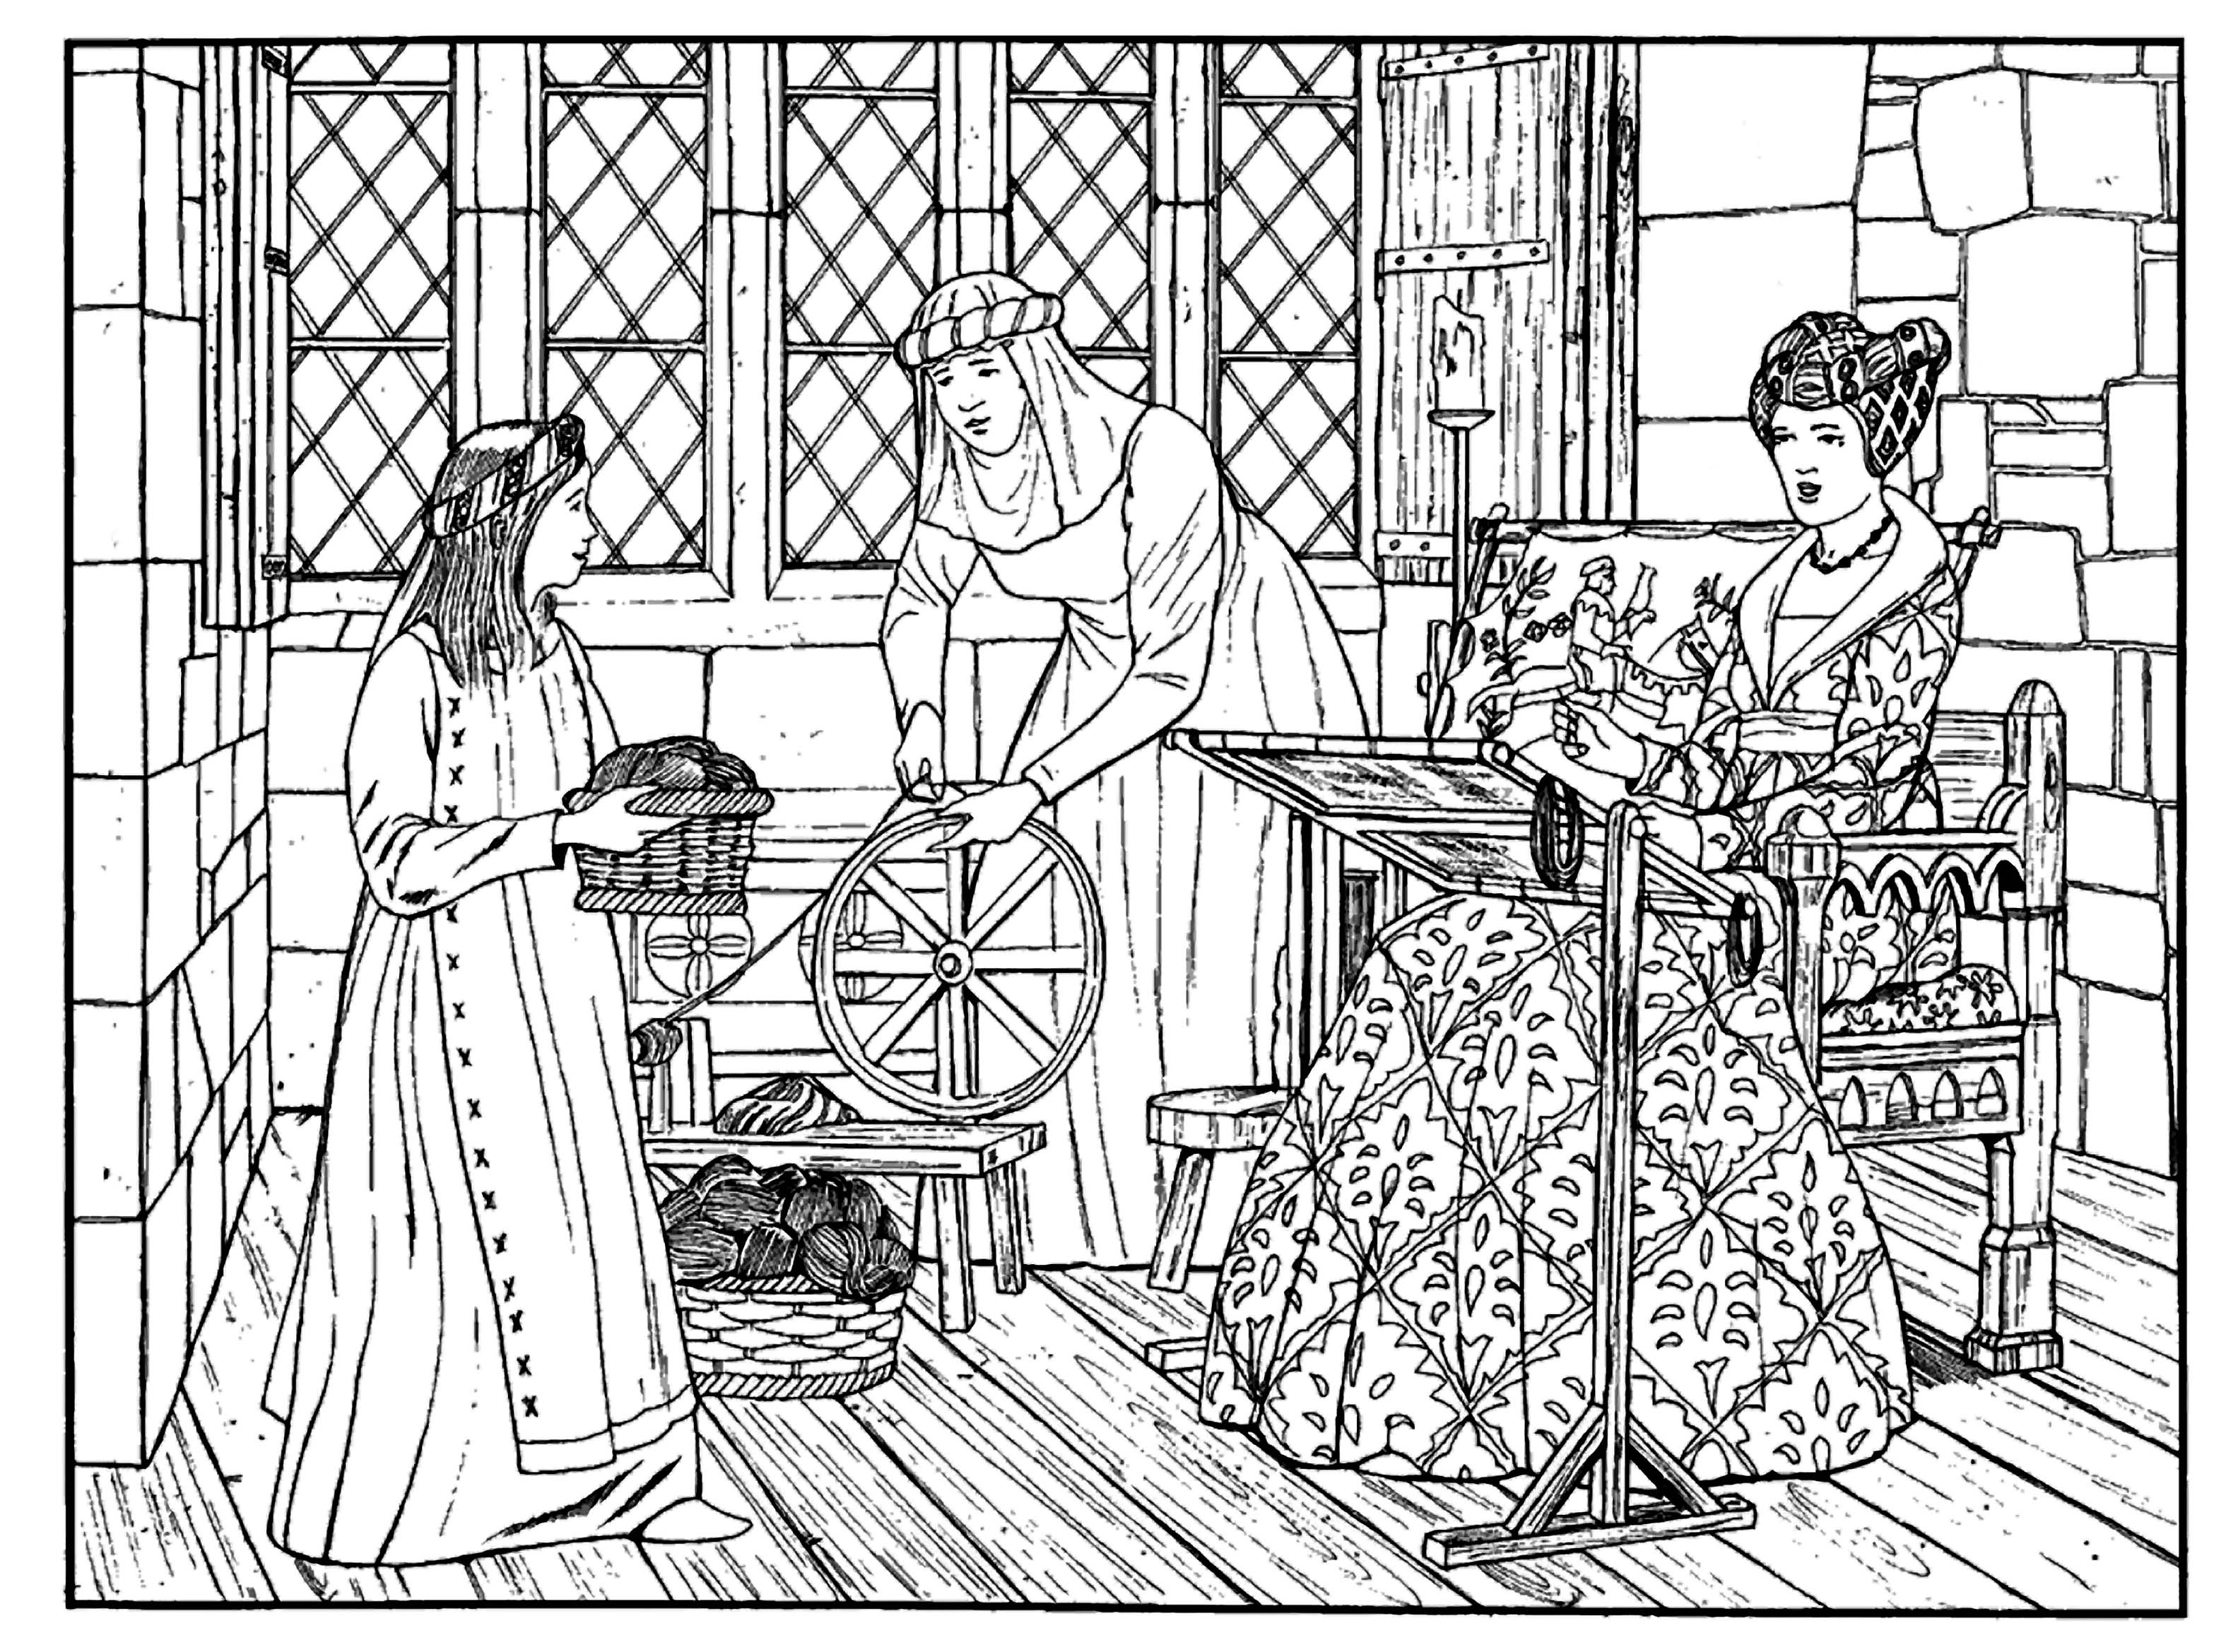 medieval coloring sheets medieval coloring pages to download and print for free sheets medieval coloring 1 1